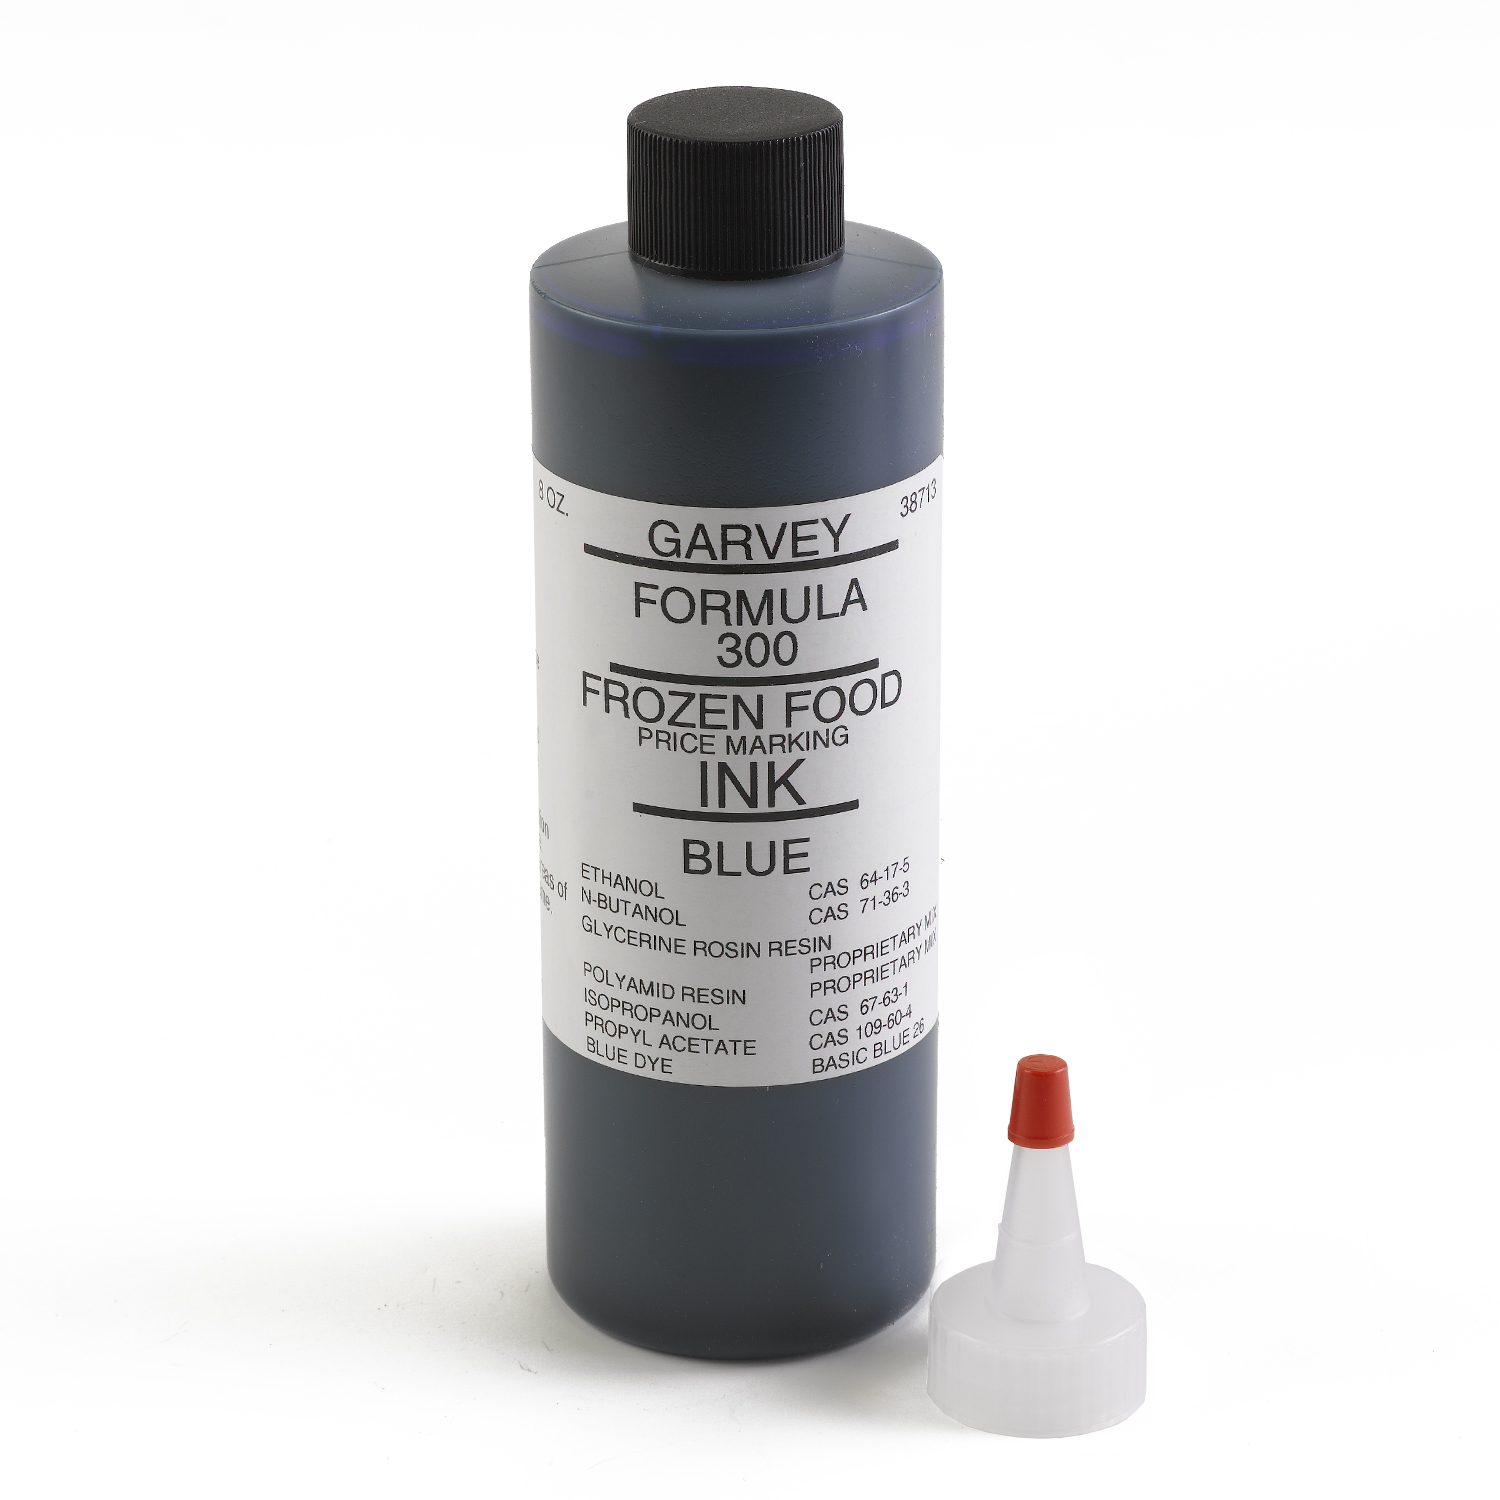 Garvey Freezer Grade Blue Price Marking Ink 8 oz - INK-38713